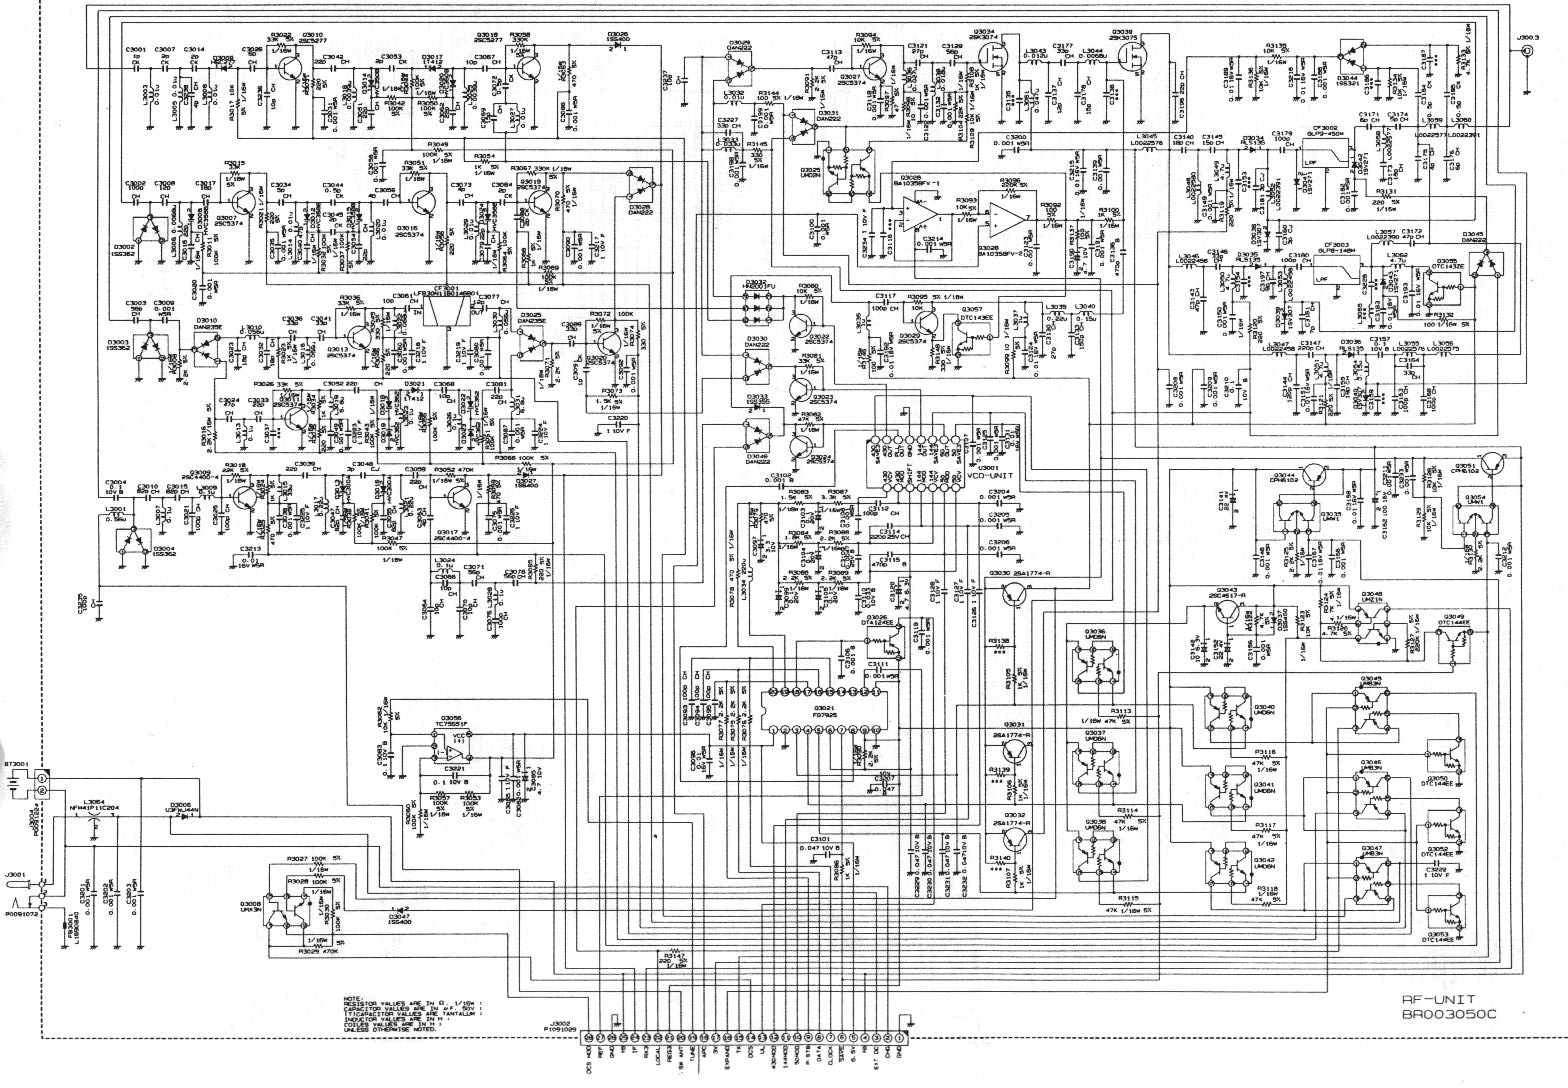 YAESU VX 5 Schematic c index of pub radio_manuals yaesu Yaesu G-450A at gsmx.co